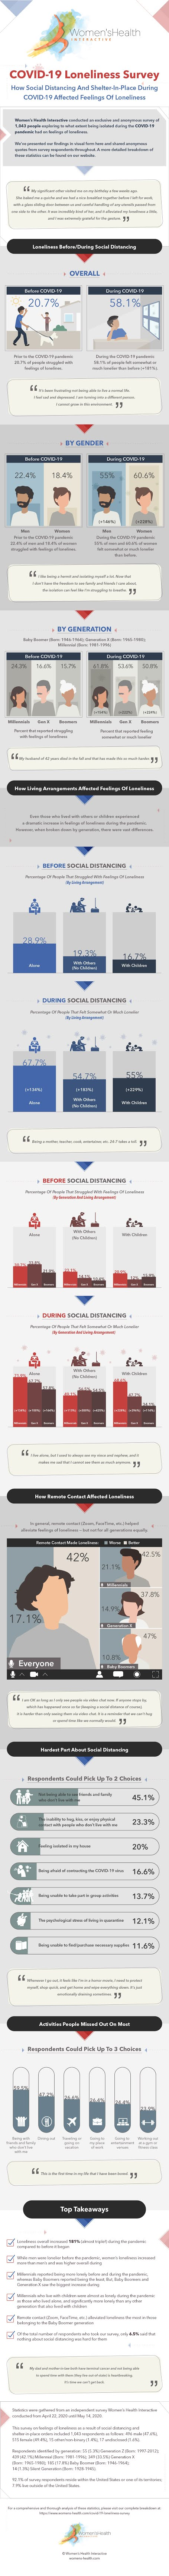 [Survey] Loneliness Tripled During COVID-19 & Social Distancing #Infographic